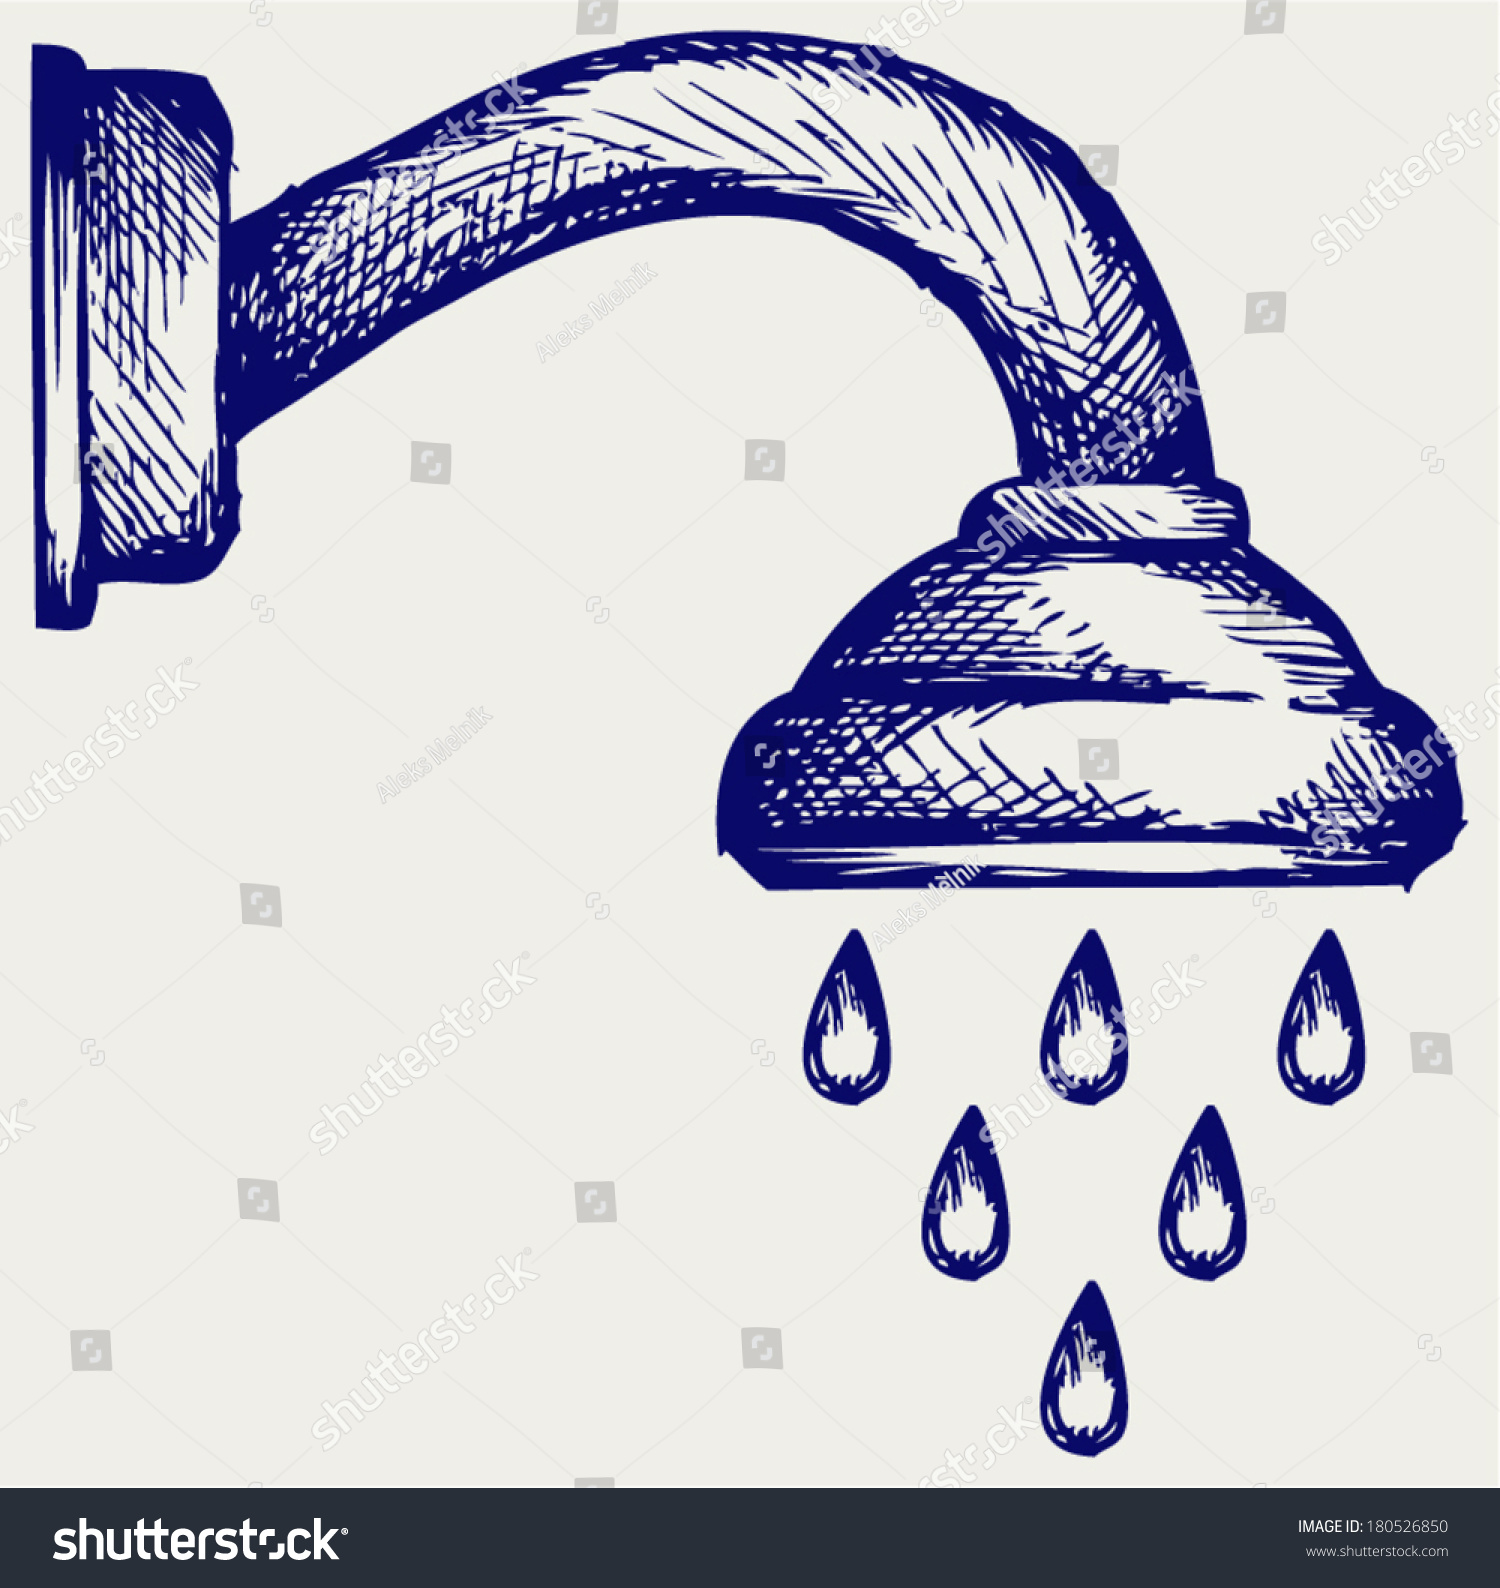 Shower Head Drawing shower head doodle style stock vector 180526850 - shutterstock